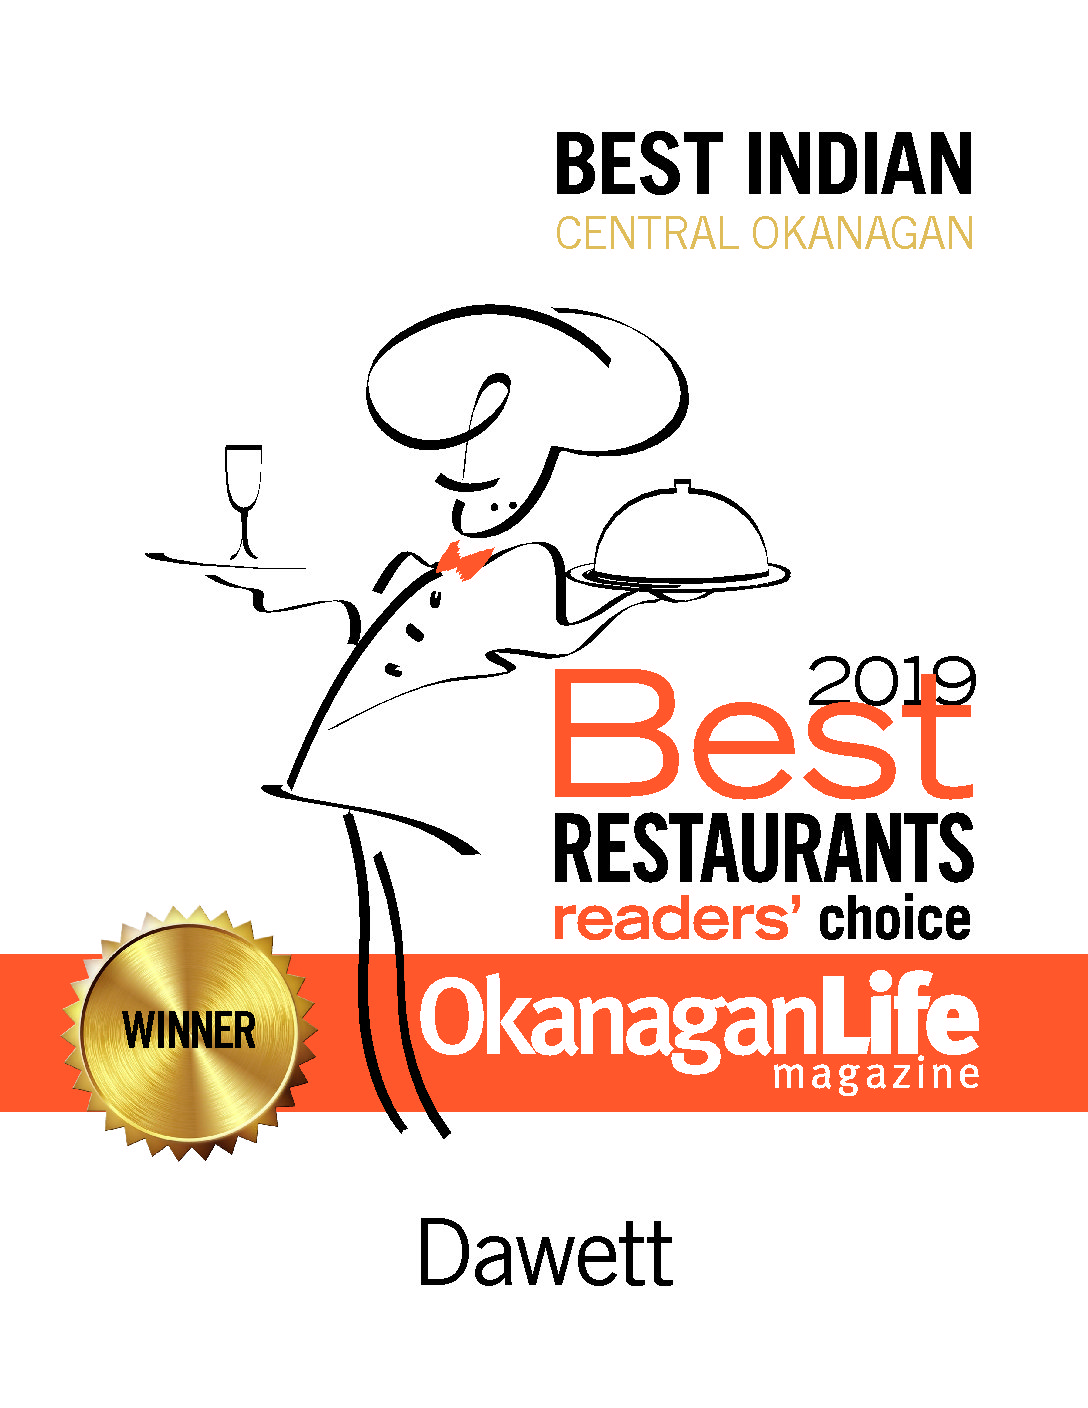 Best Indian restaurants in the Okanagan